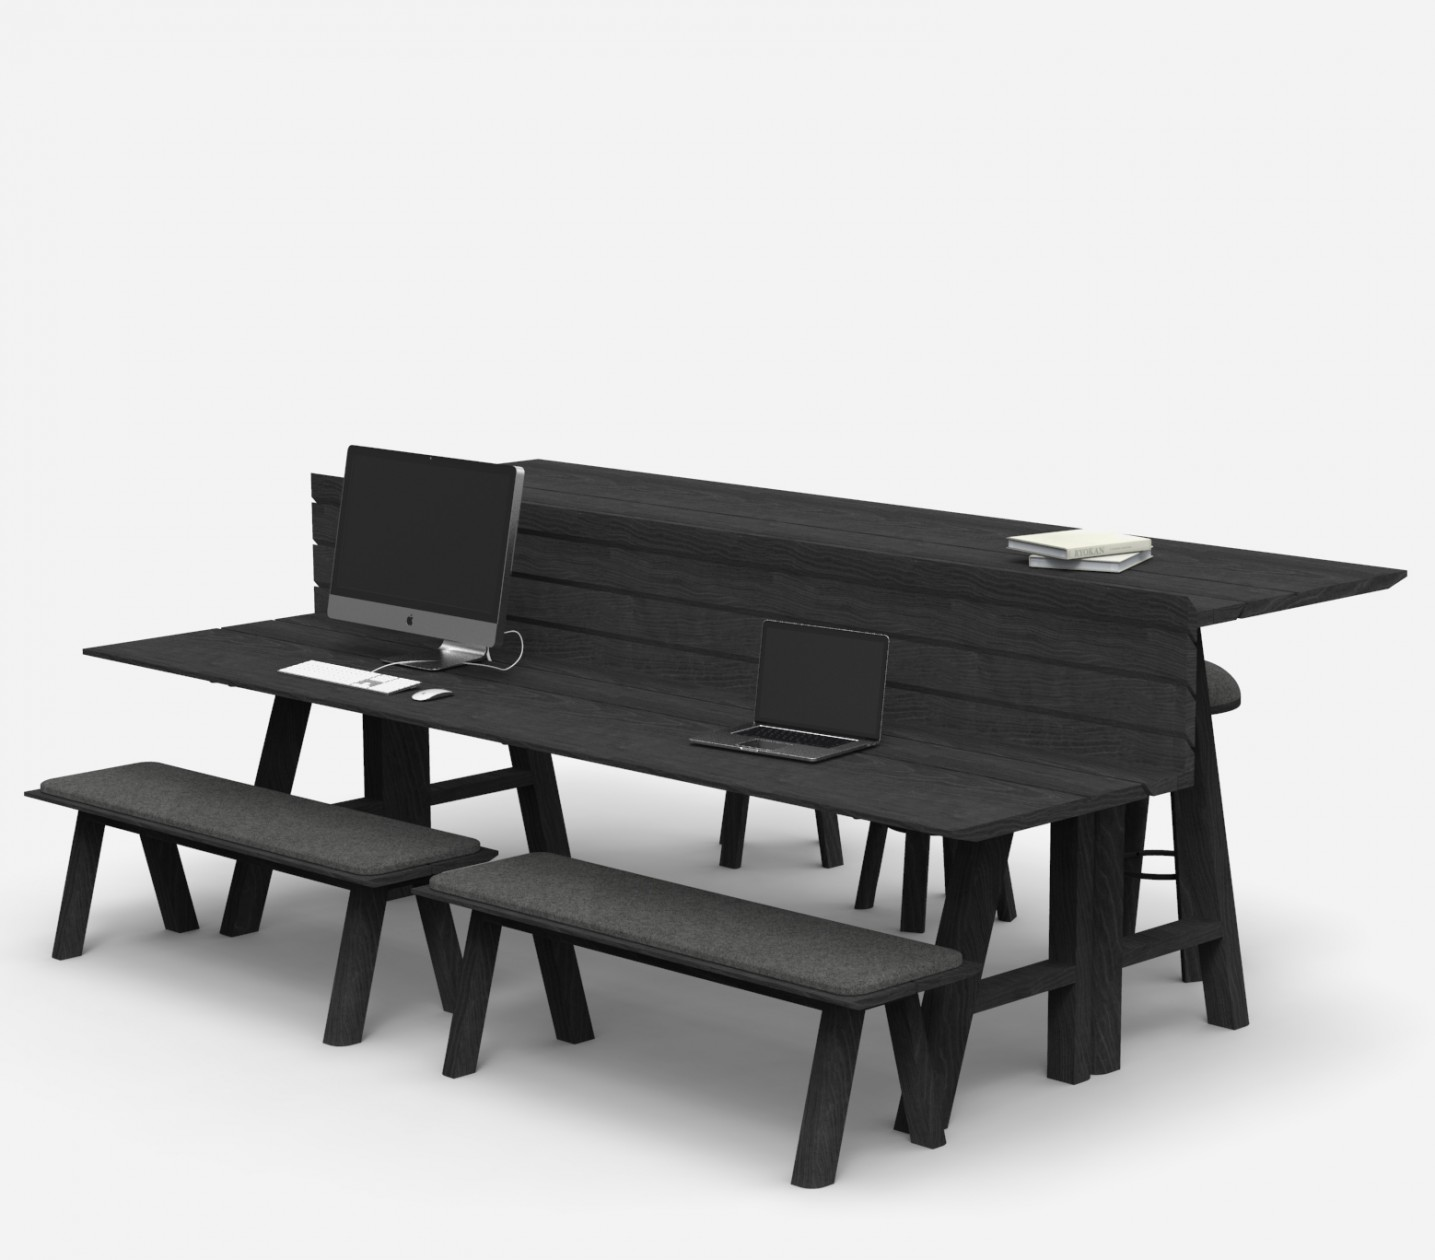 BUZZIPICNIC / Versatile Workbenchs And Tables